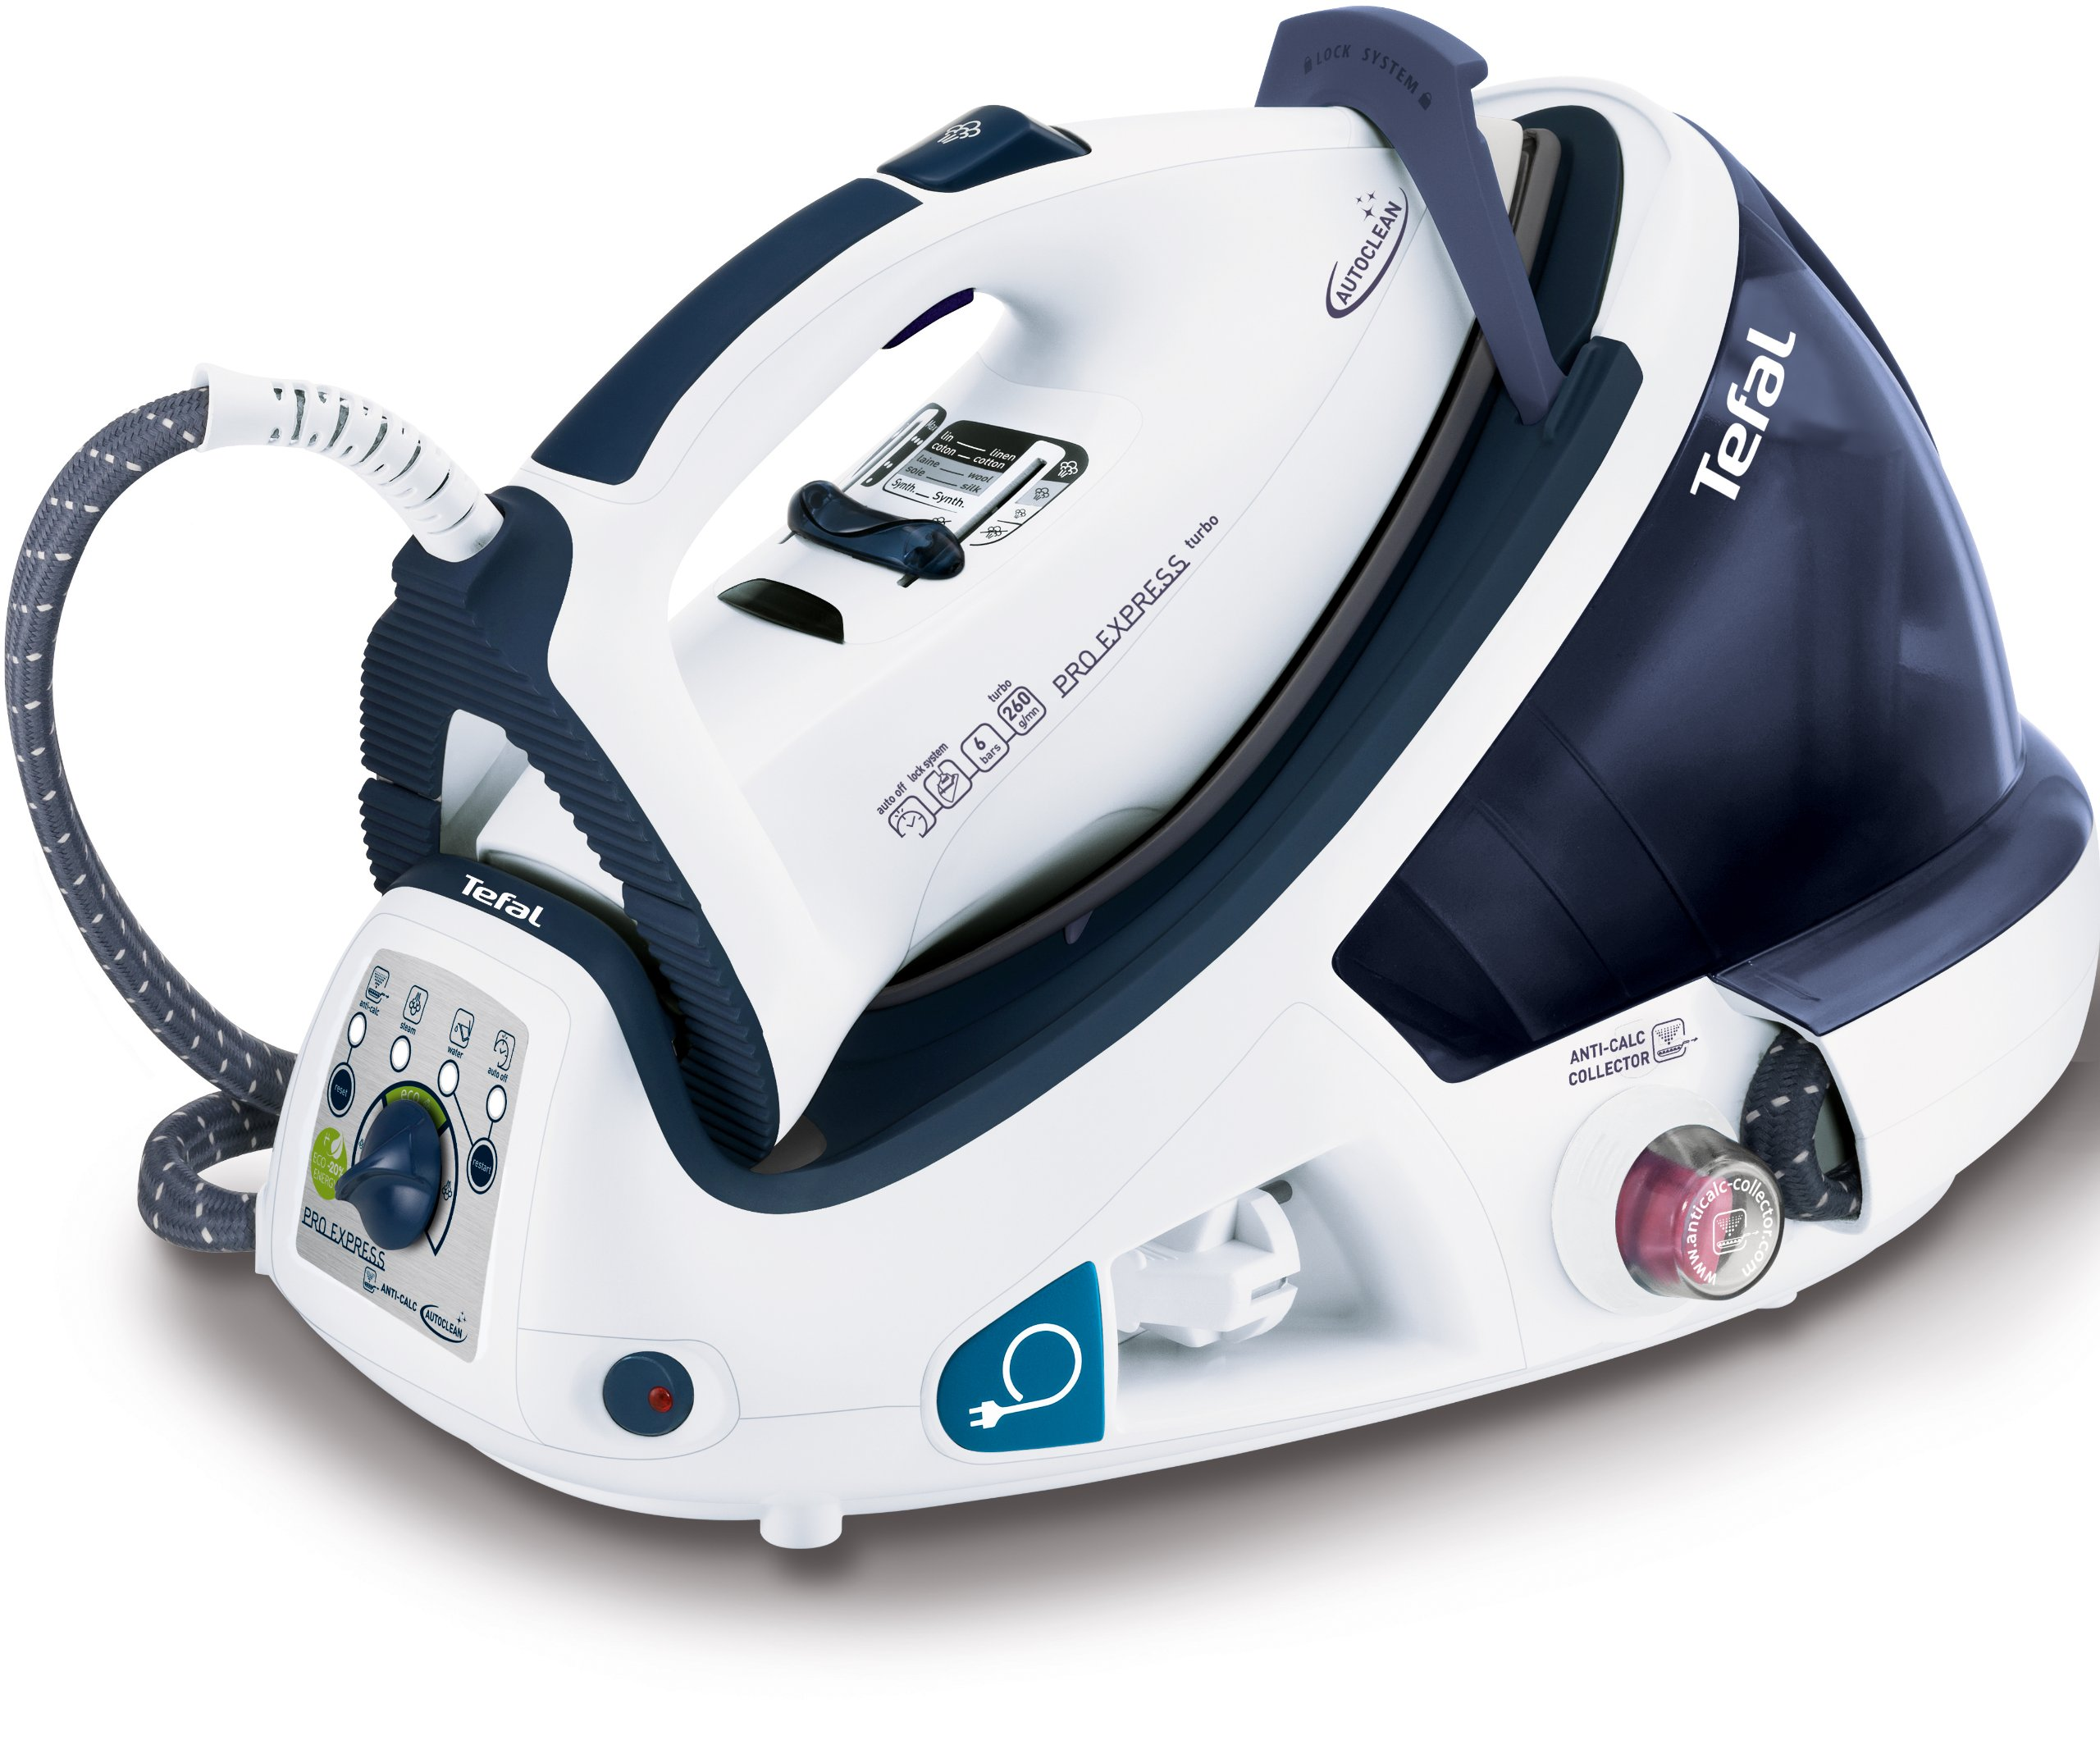 Tefal Gv8461 Pro Express Autoclean High Pressure Steam Generator White